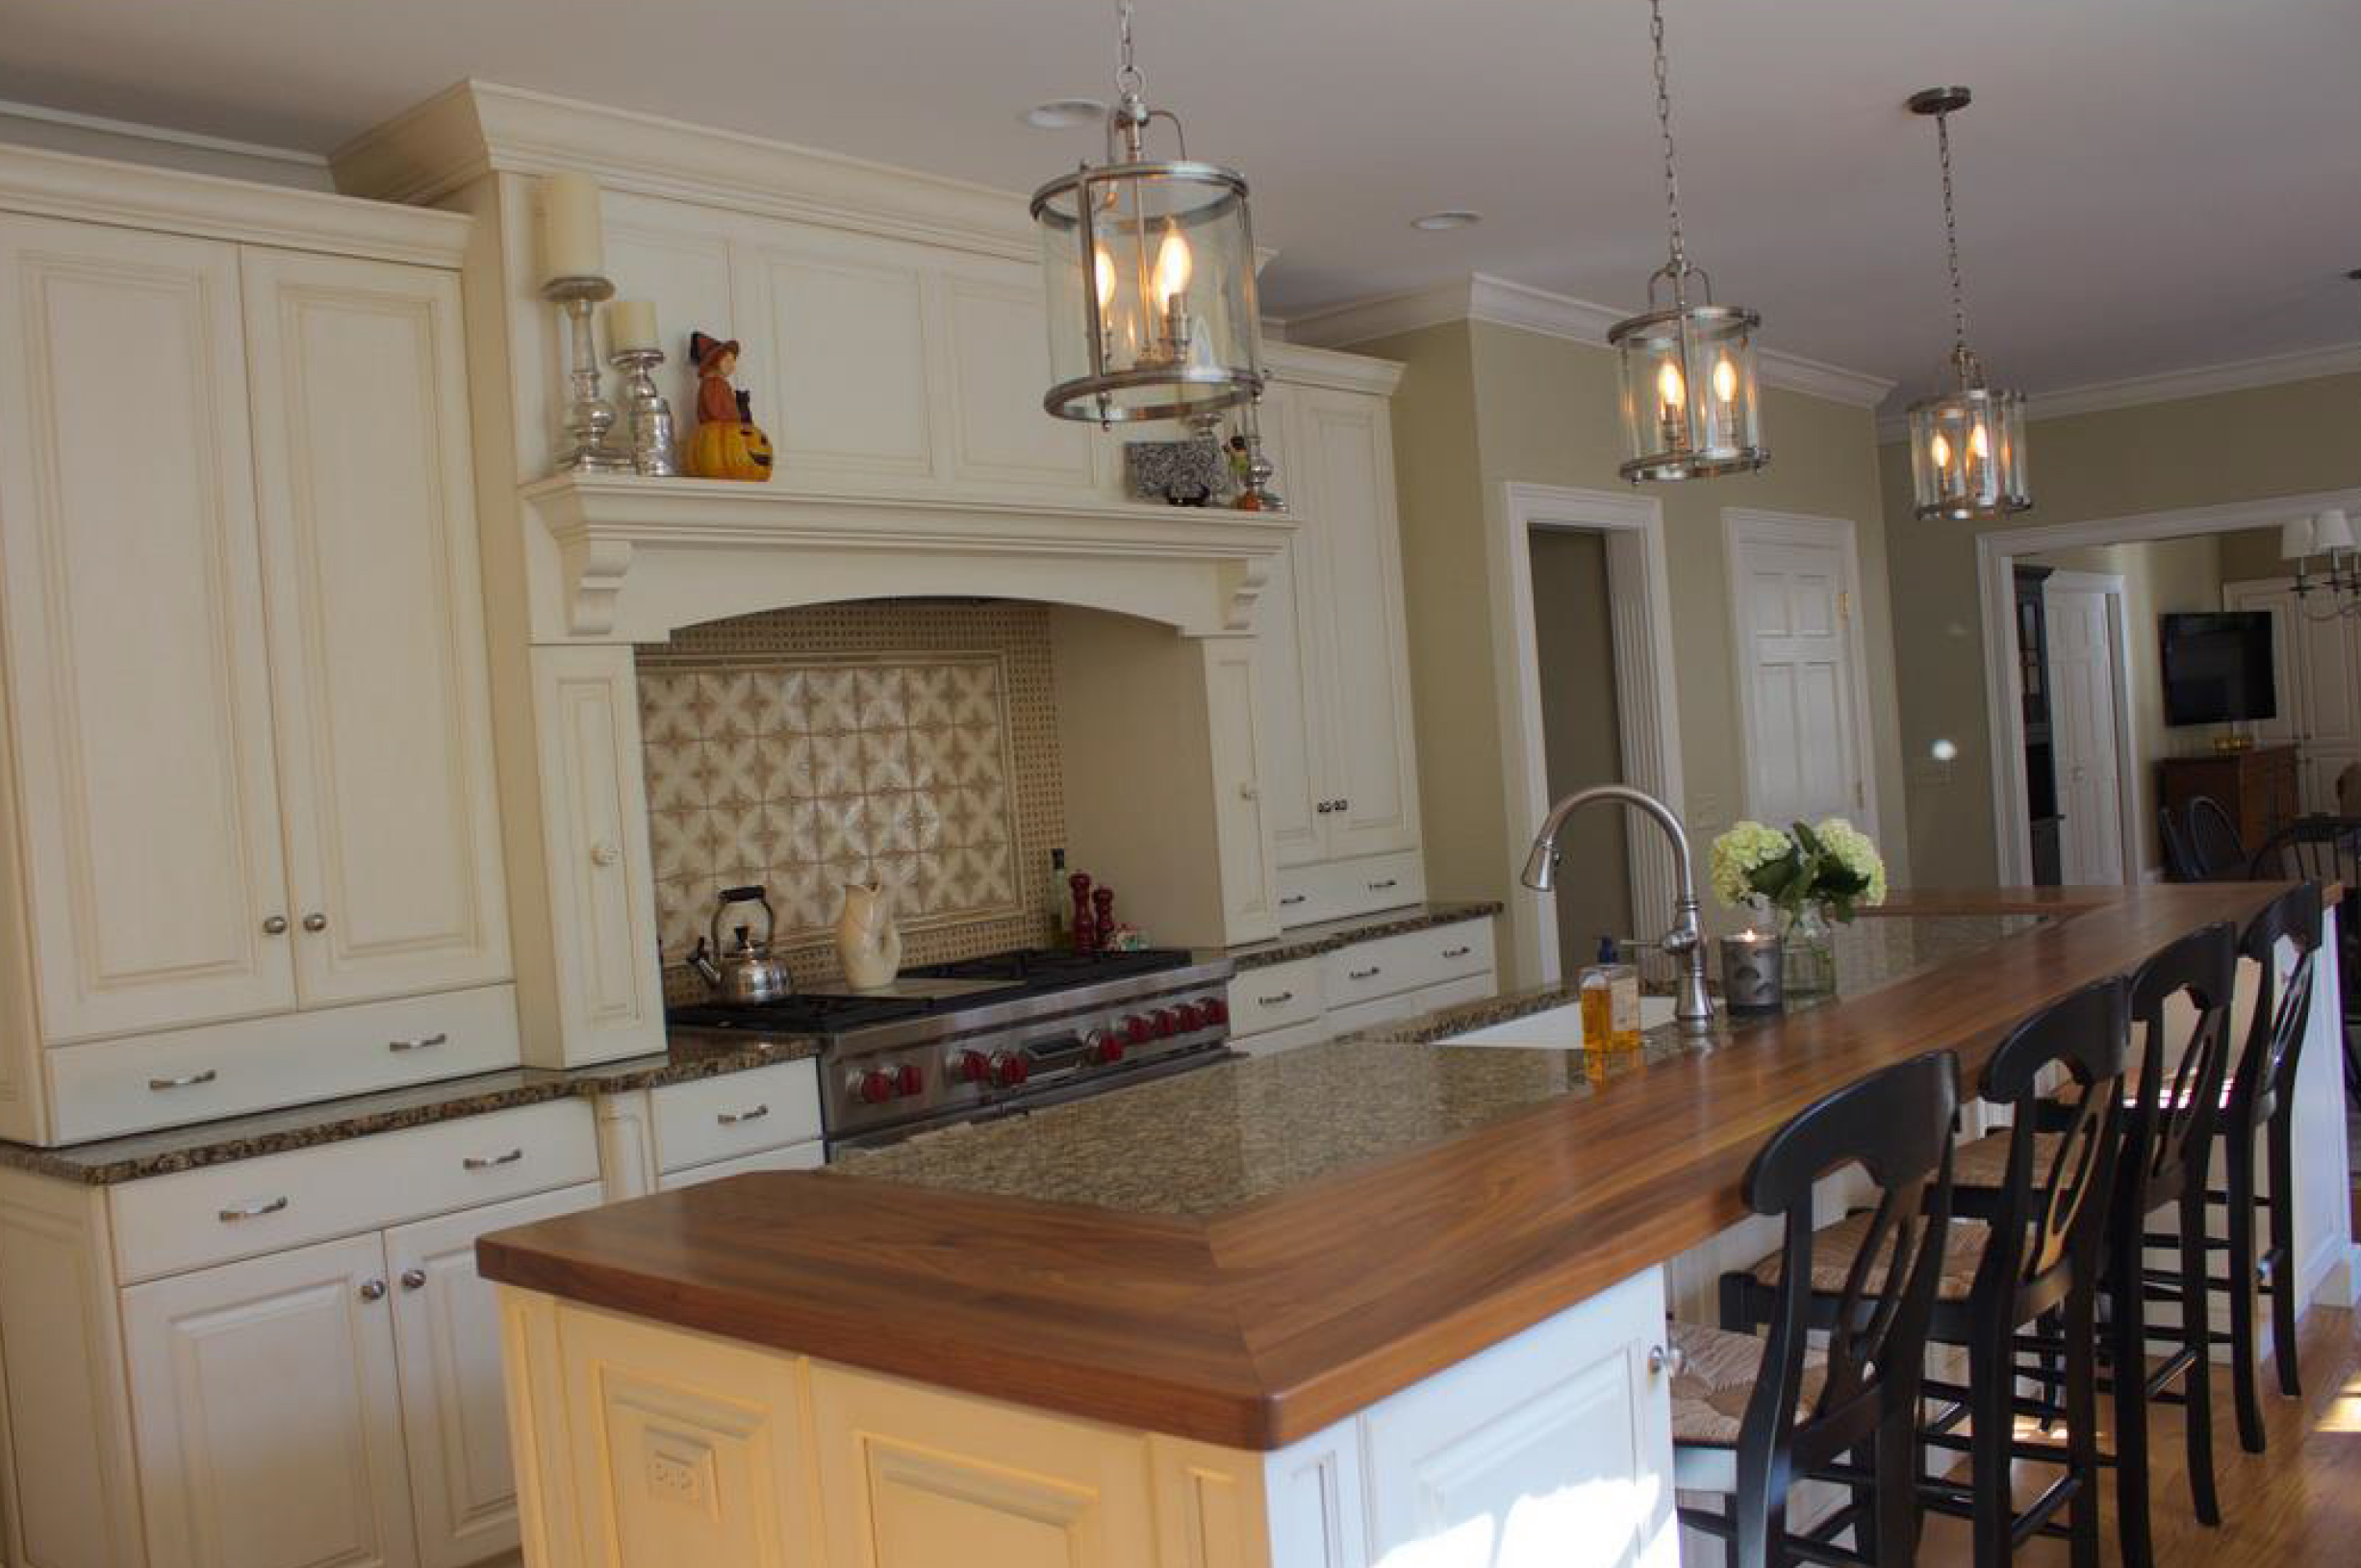 White Kitchens with Walnut Wood Countertop